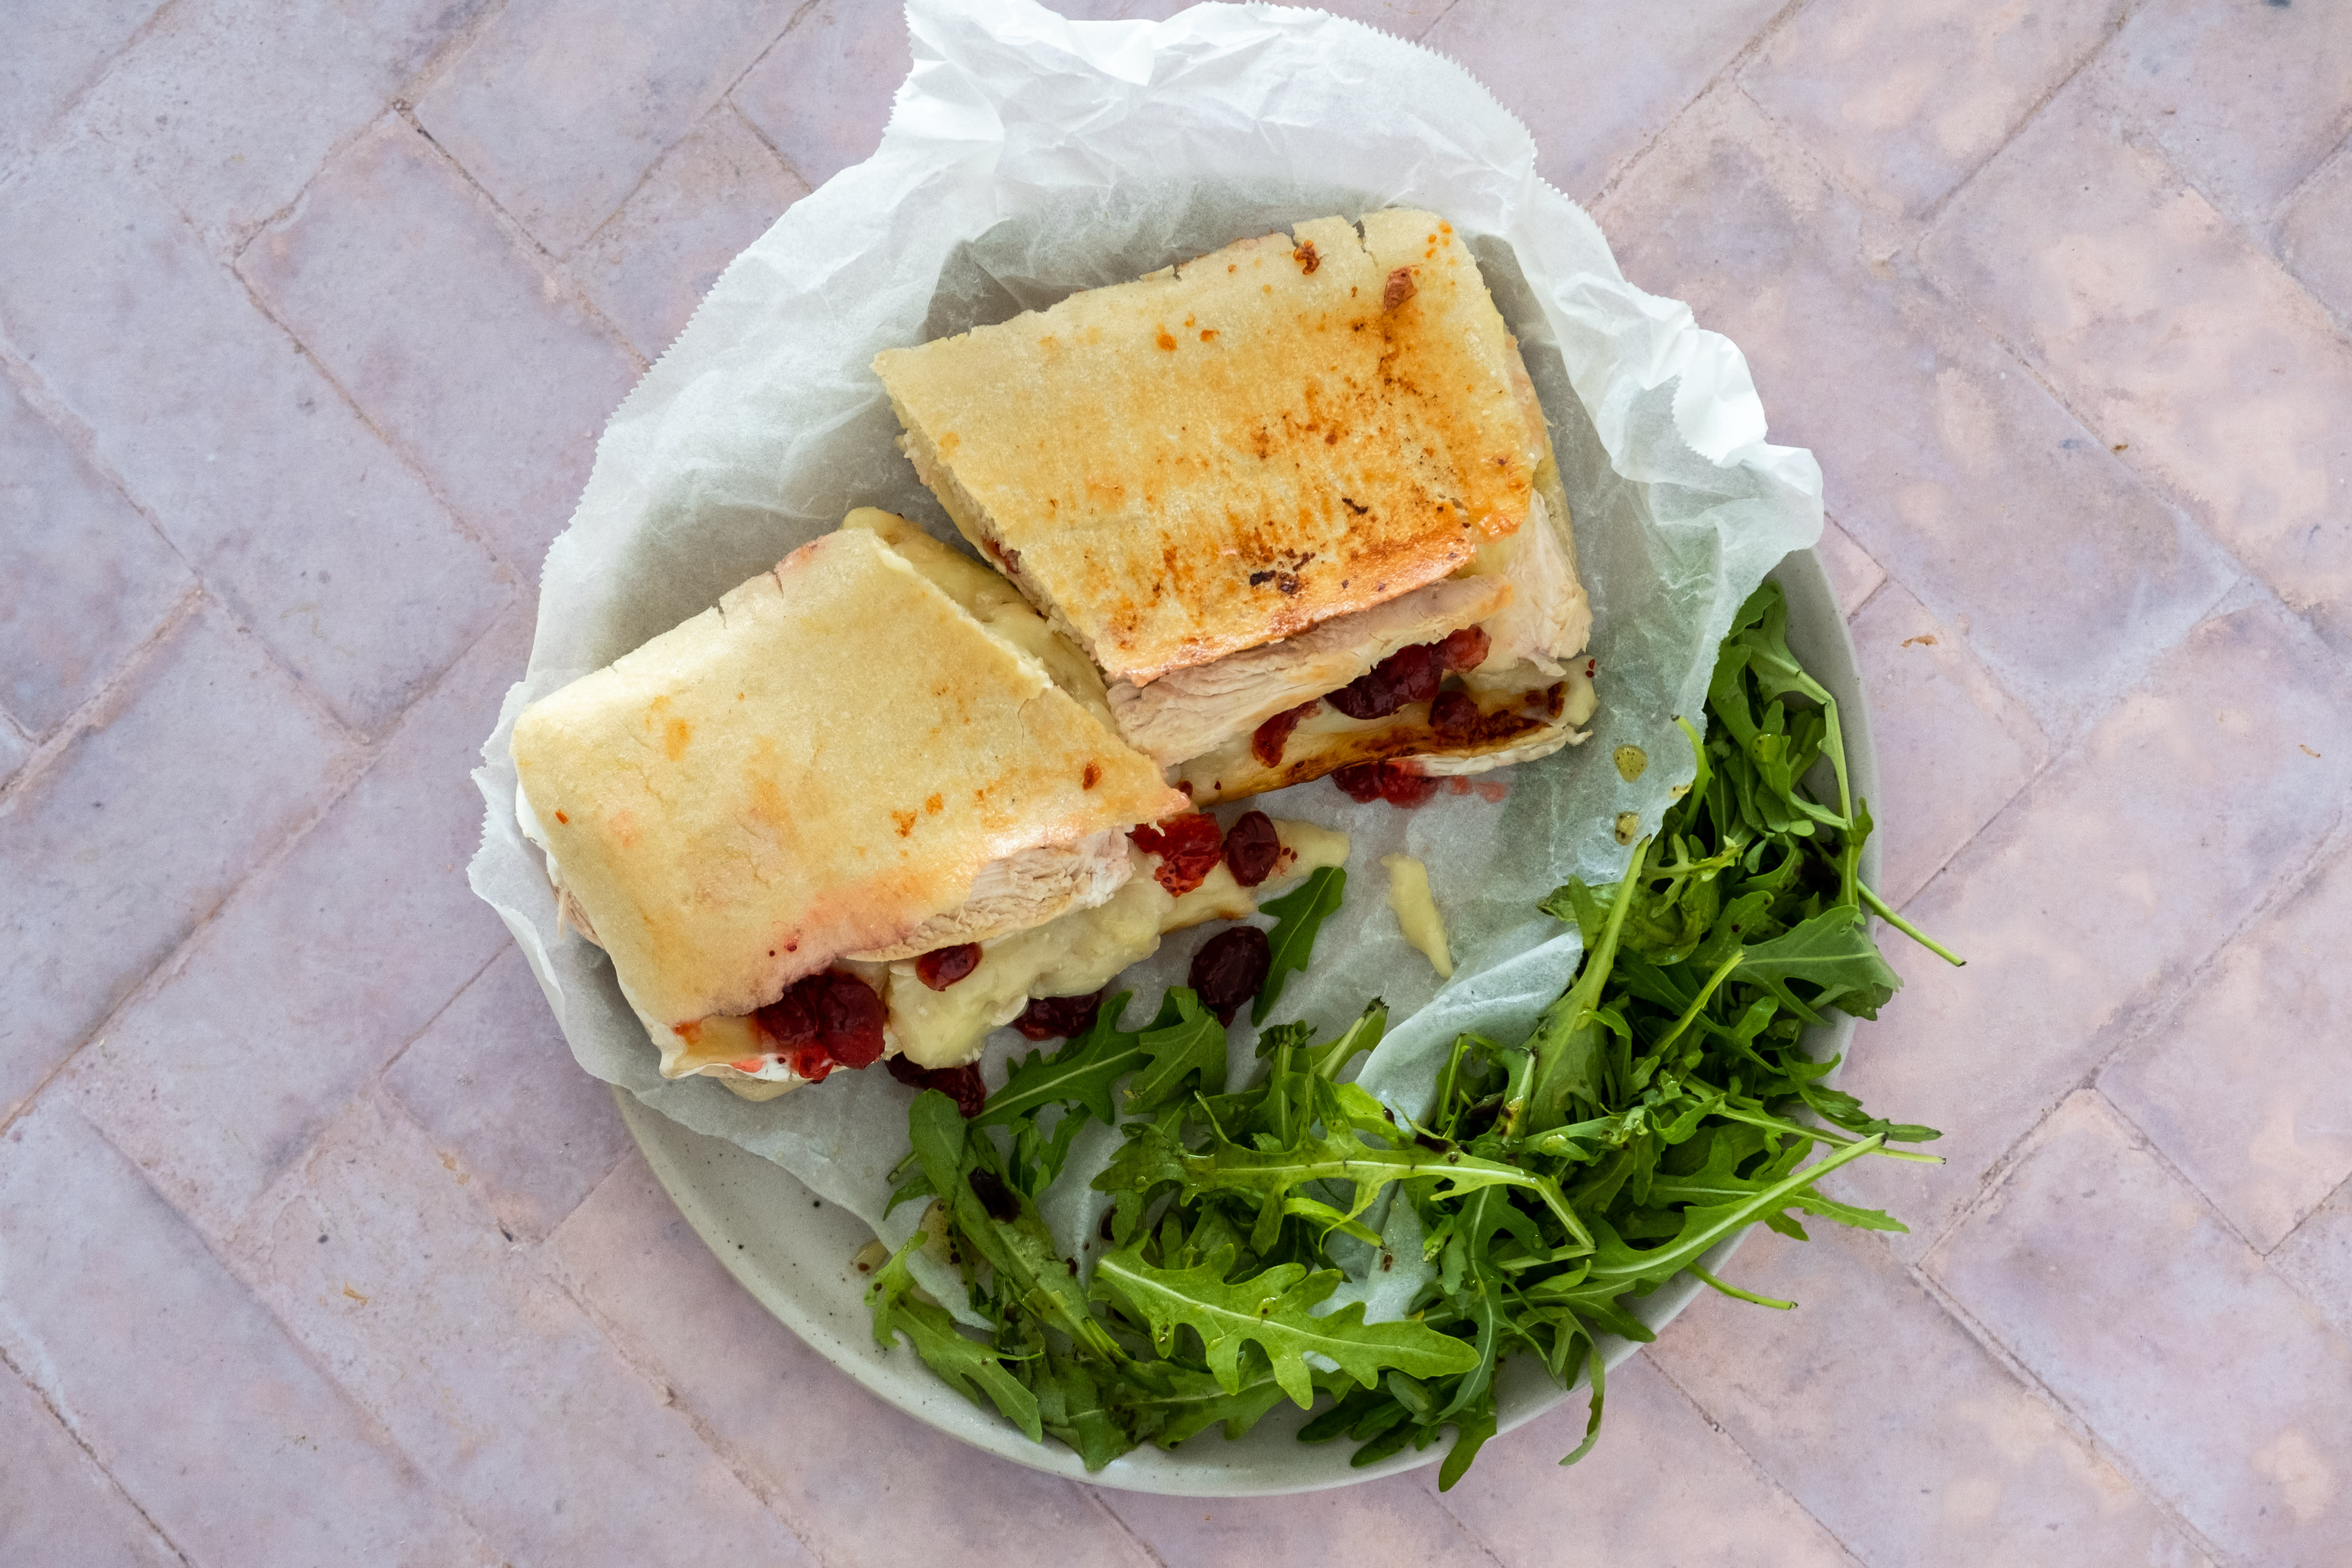 Chicken, Brie and Cranberry Panini with Rocket Salad